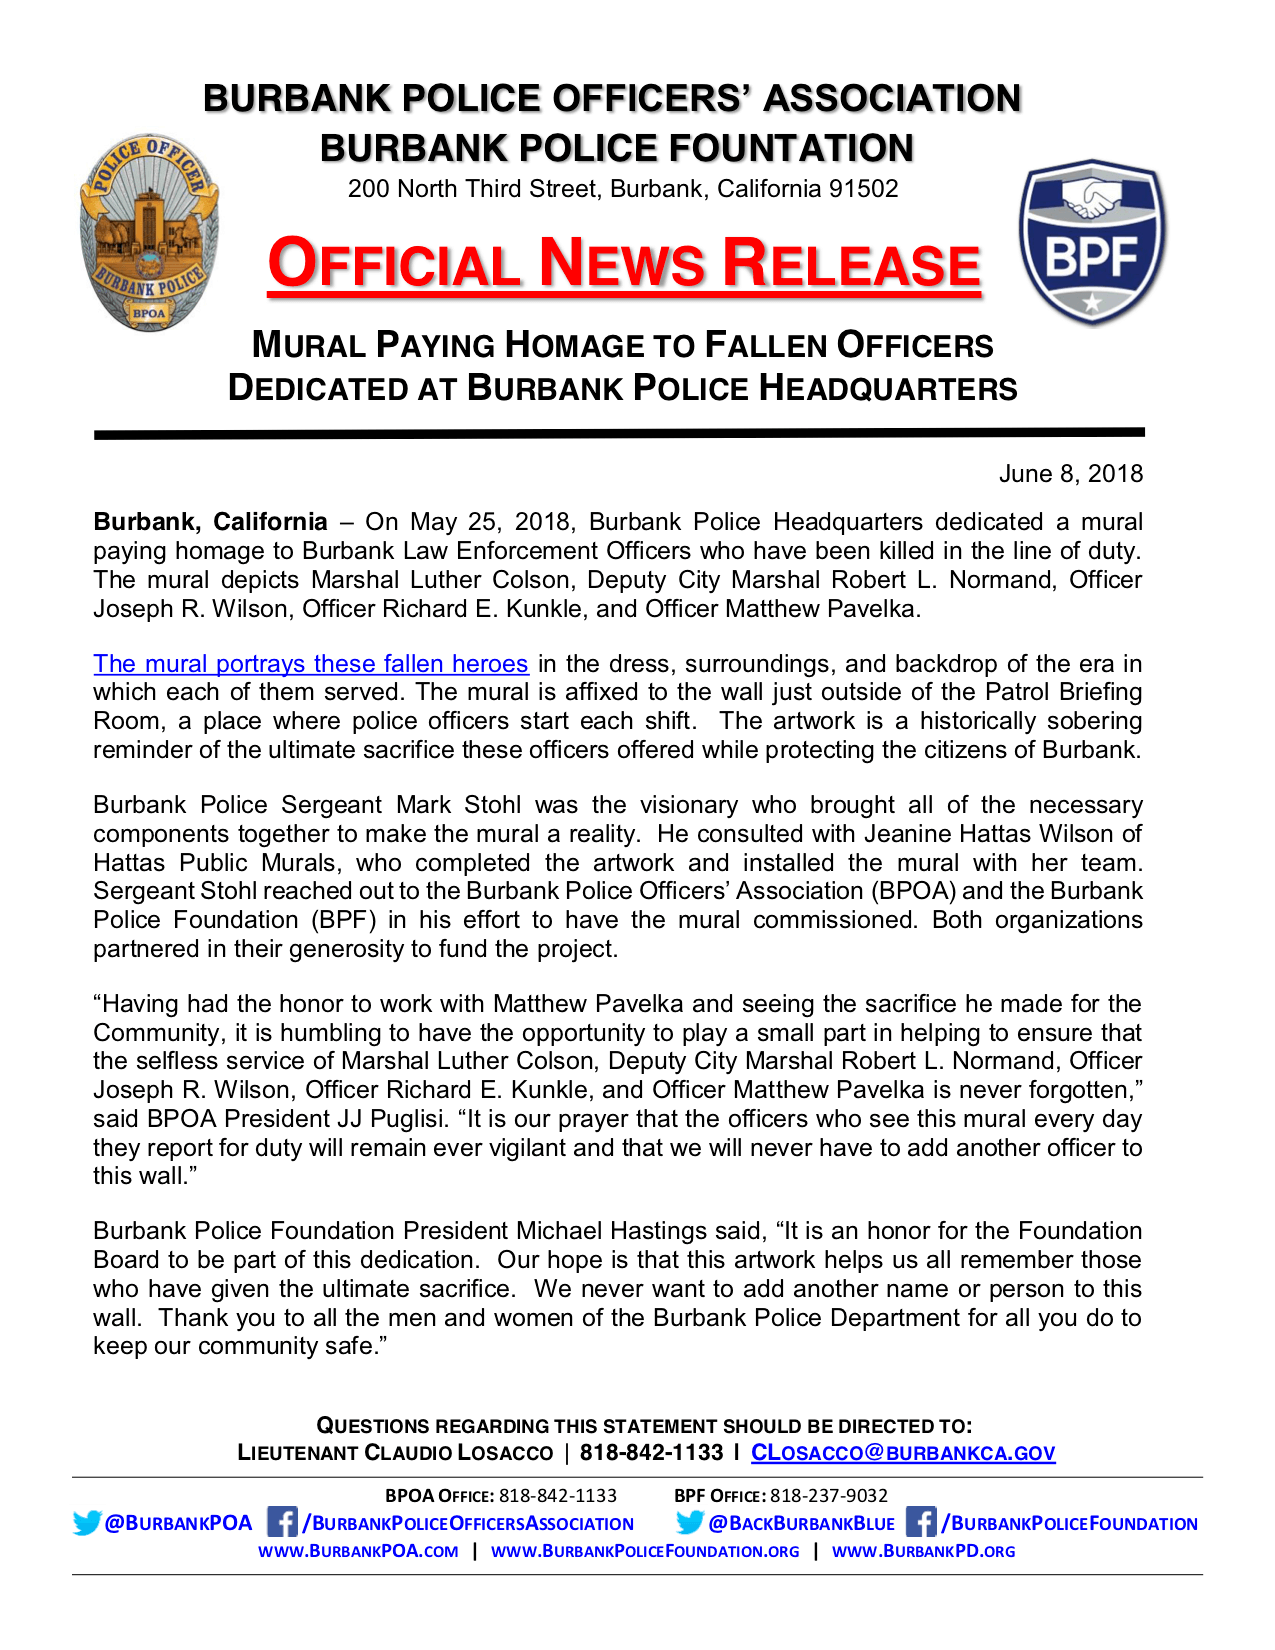 BPOA-BPF-News-Release---Mural-Paying-Homage-to-Fallen-Officers-Dedicated-at-Burbank-Police-Headquarters